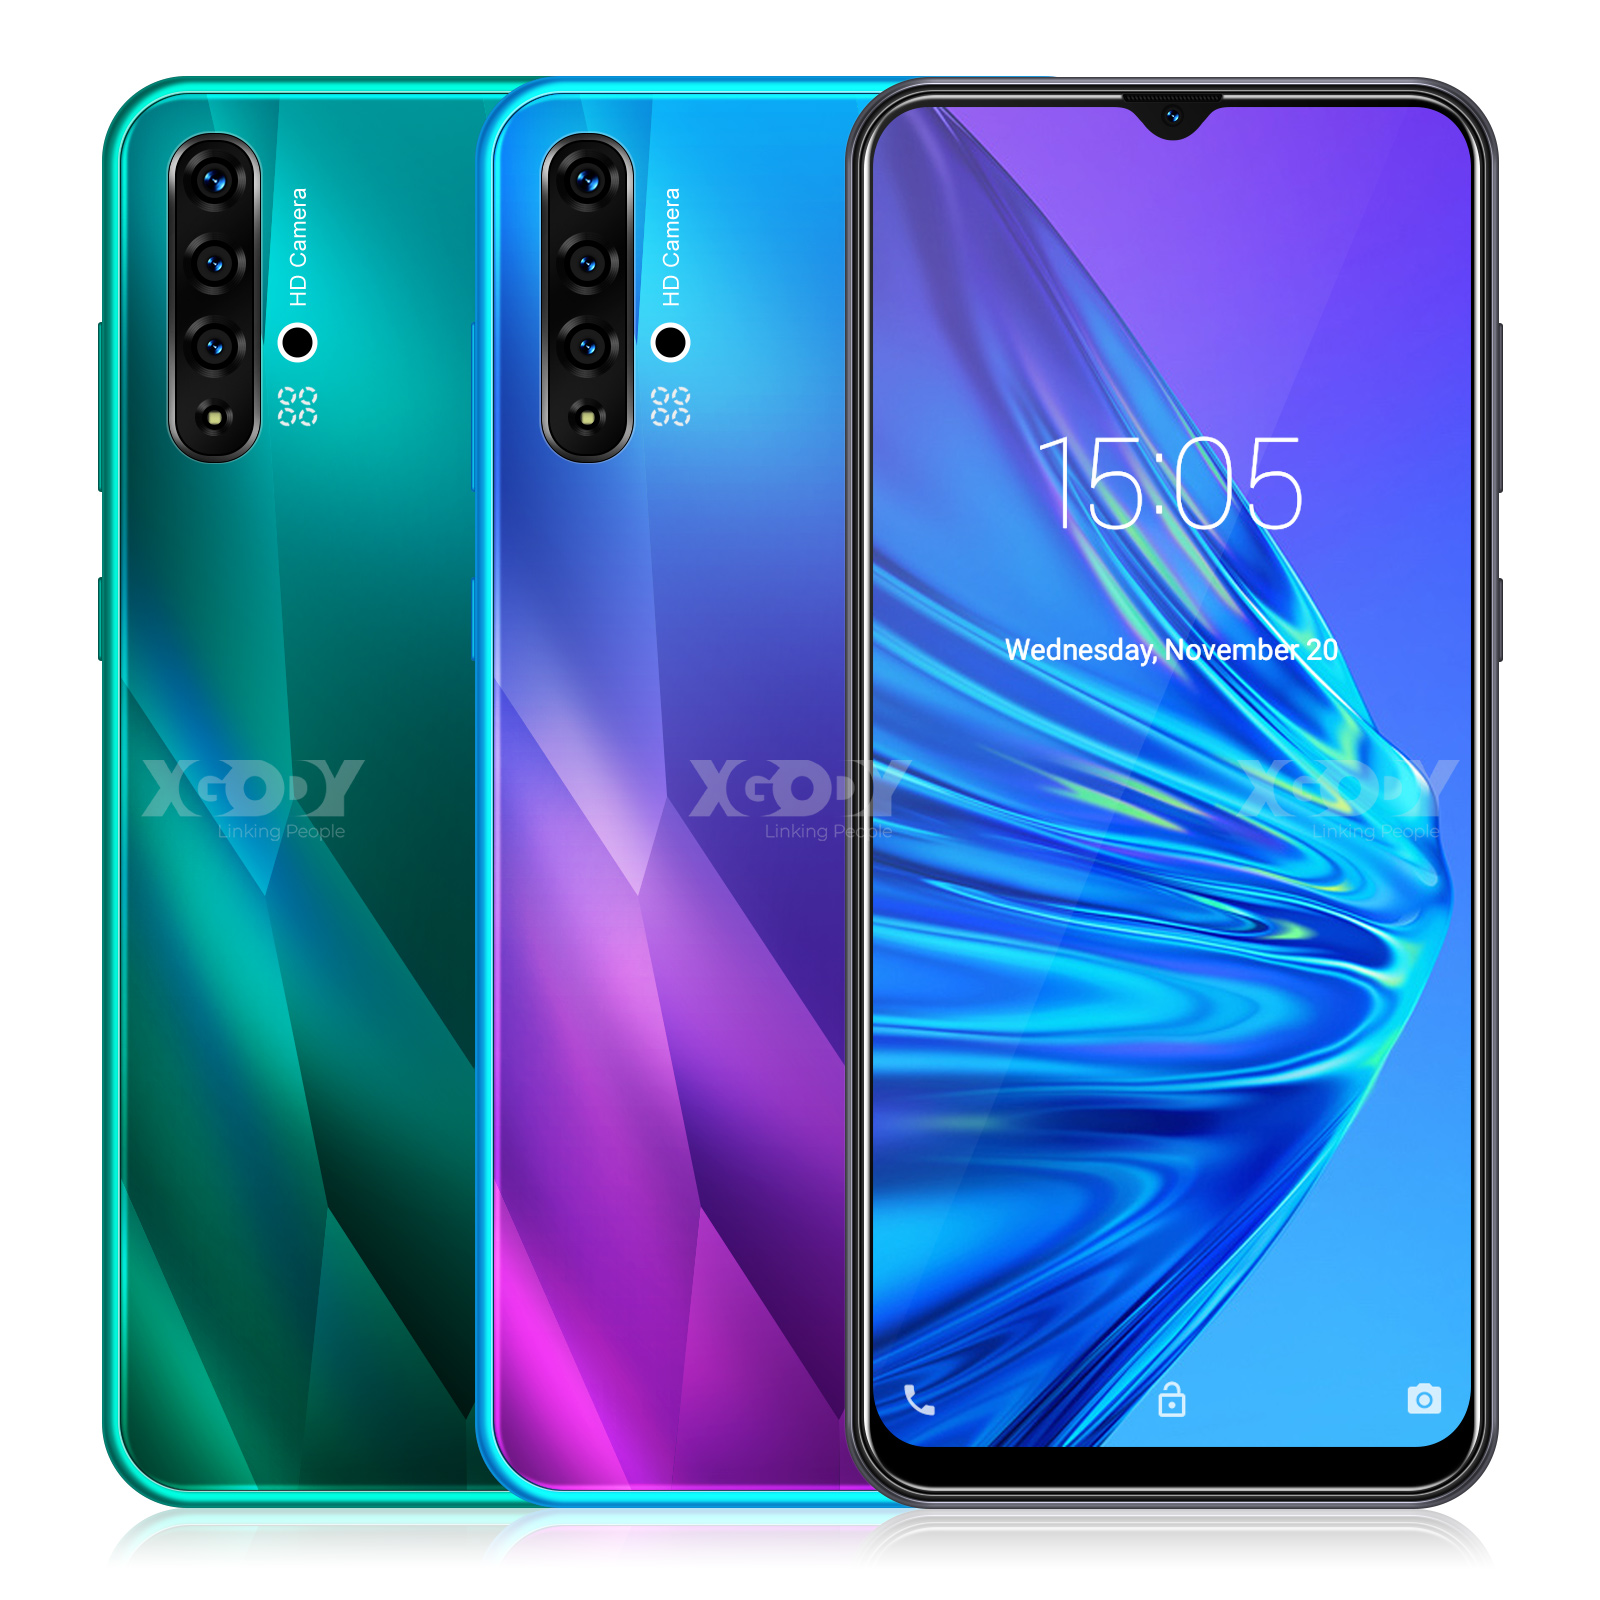 XGODY 6.5inch 19:9 Big Screen 3G Smartphone Android 9.0 1GB 4GB MTK6580 Quad Core 5MP Camera 3000mAh WIFI GPS Mobile Phone image